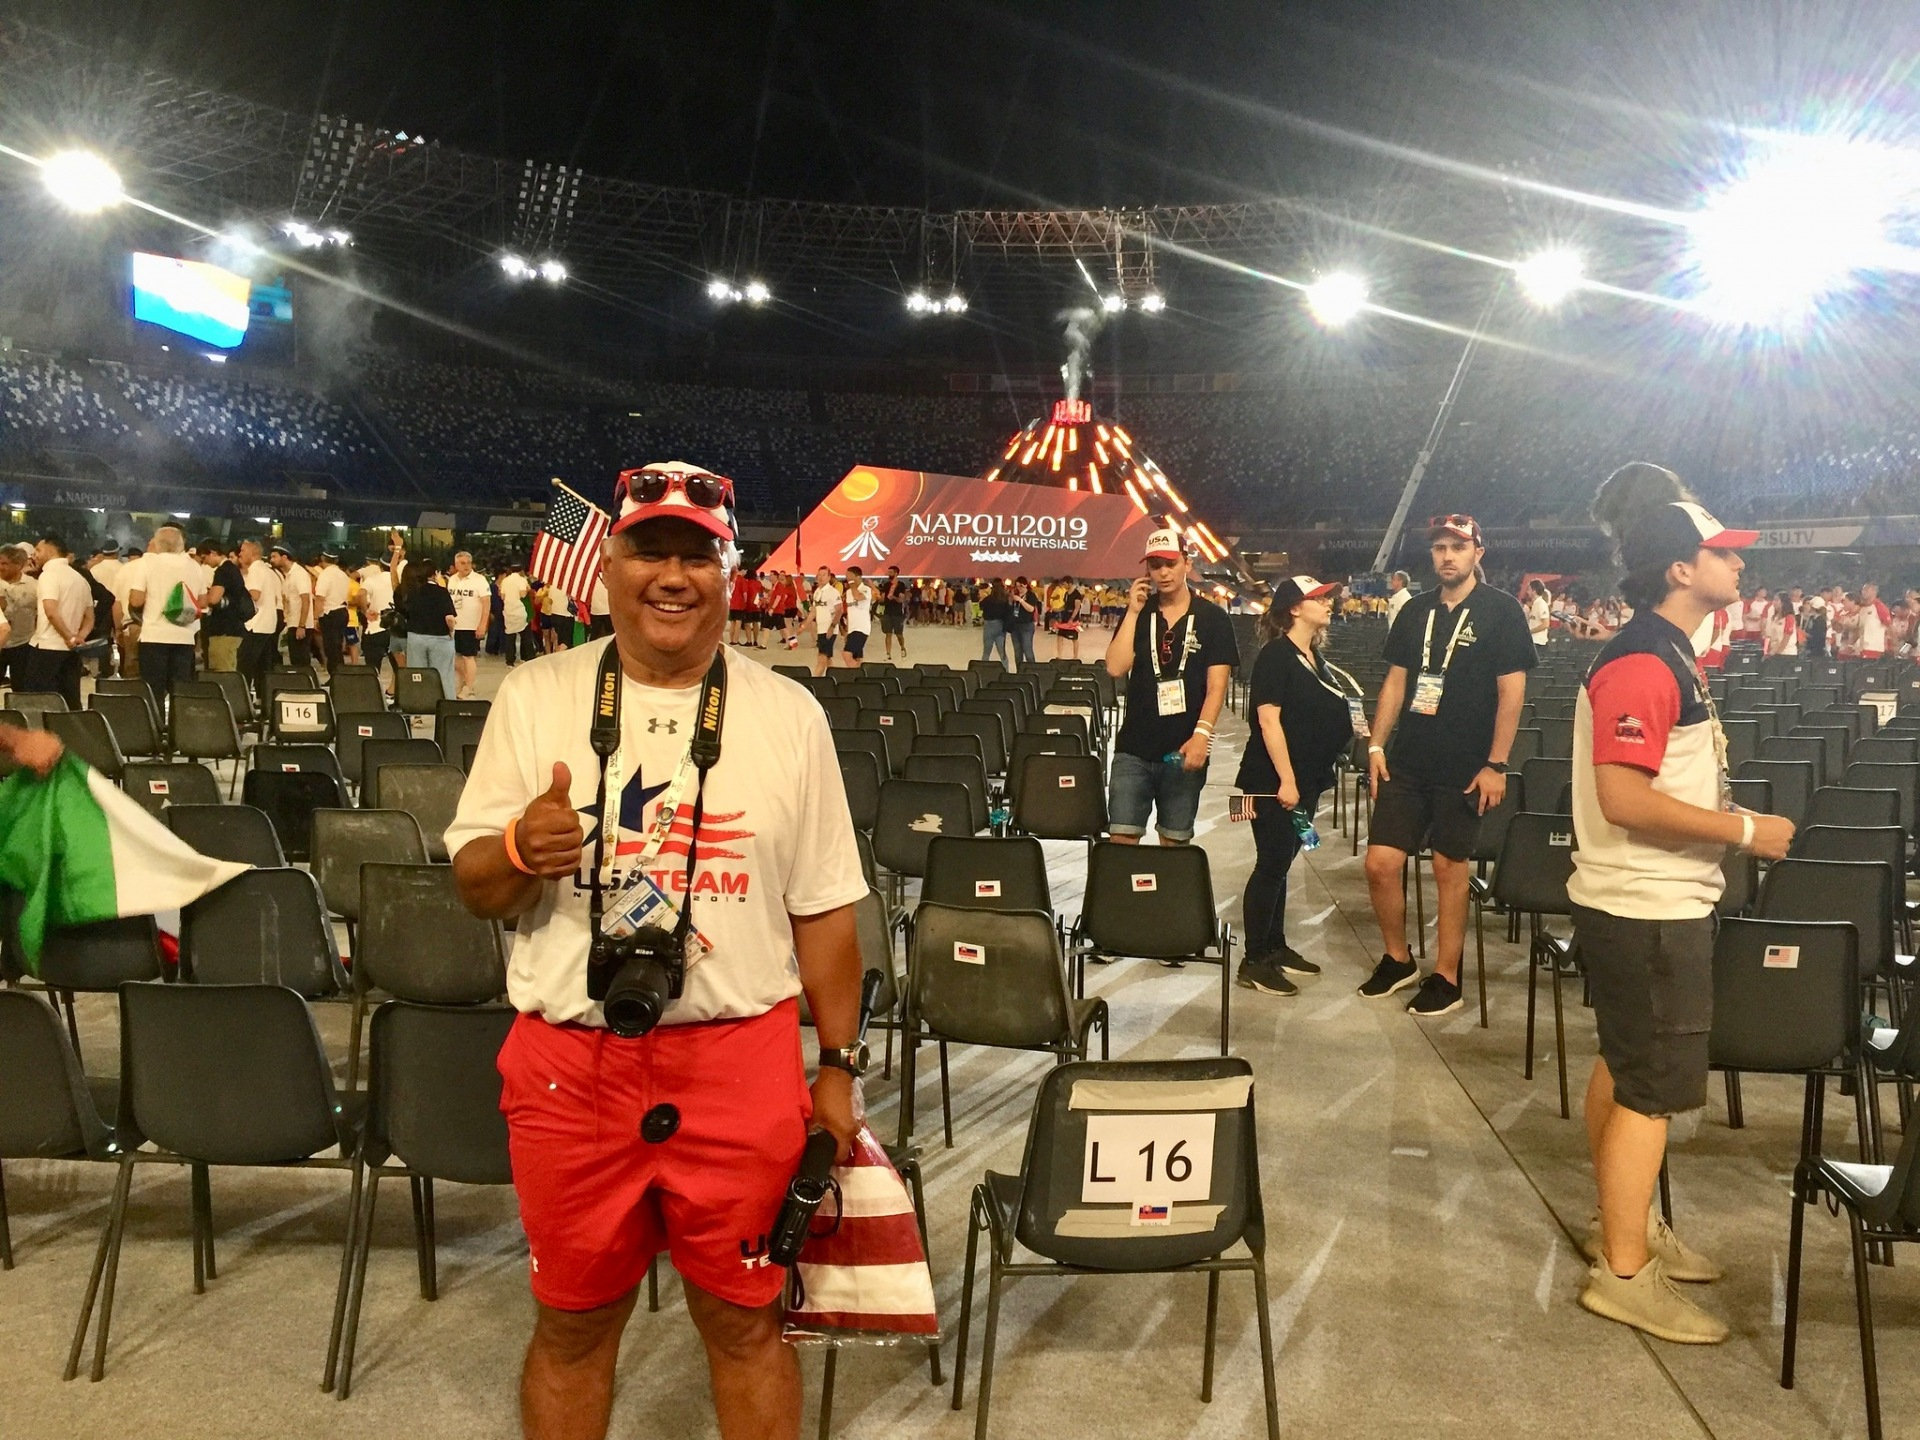 Paul Alvarez at Opening Ceremony